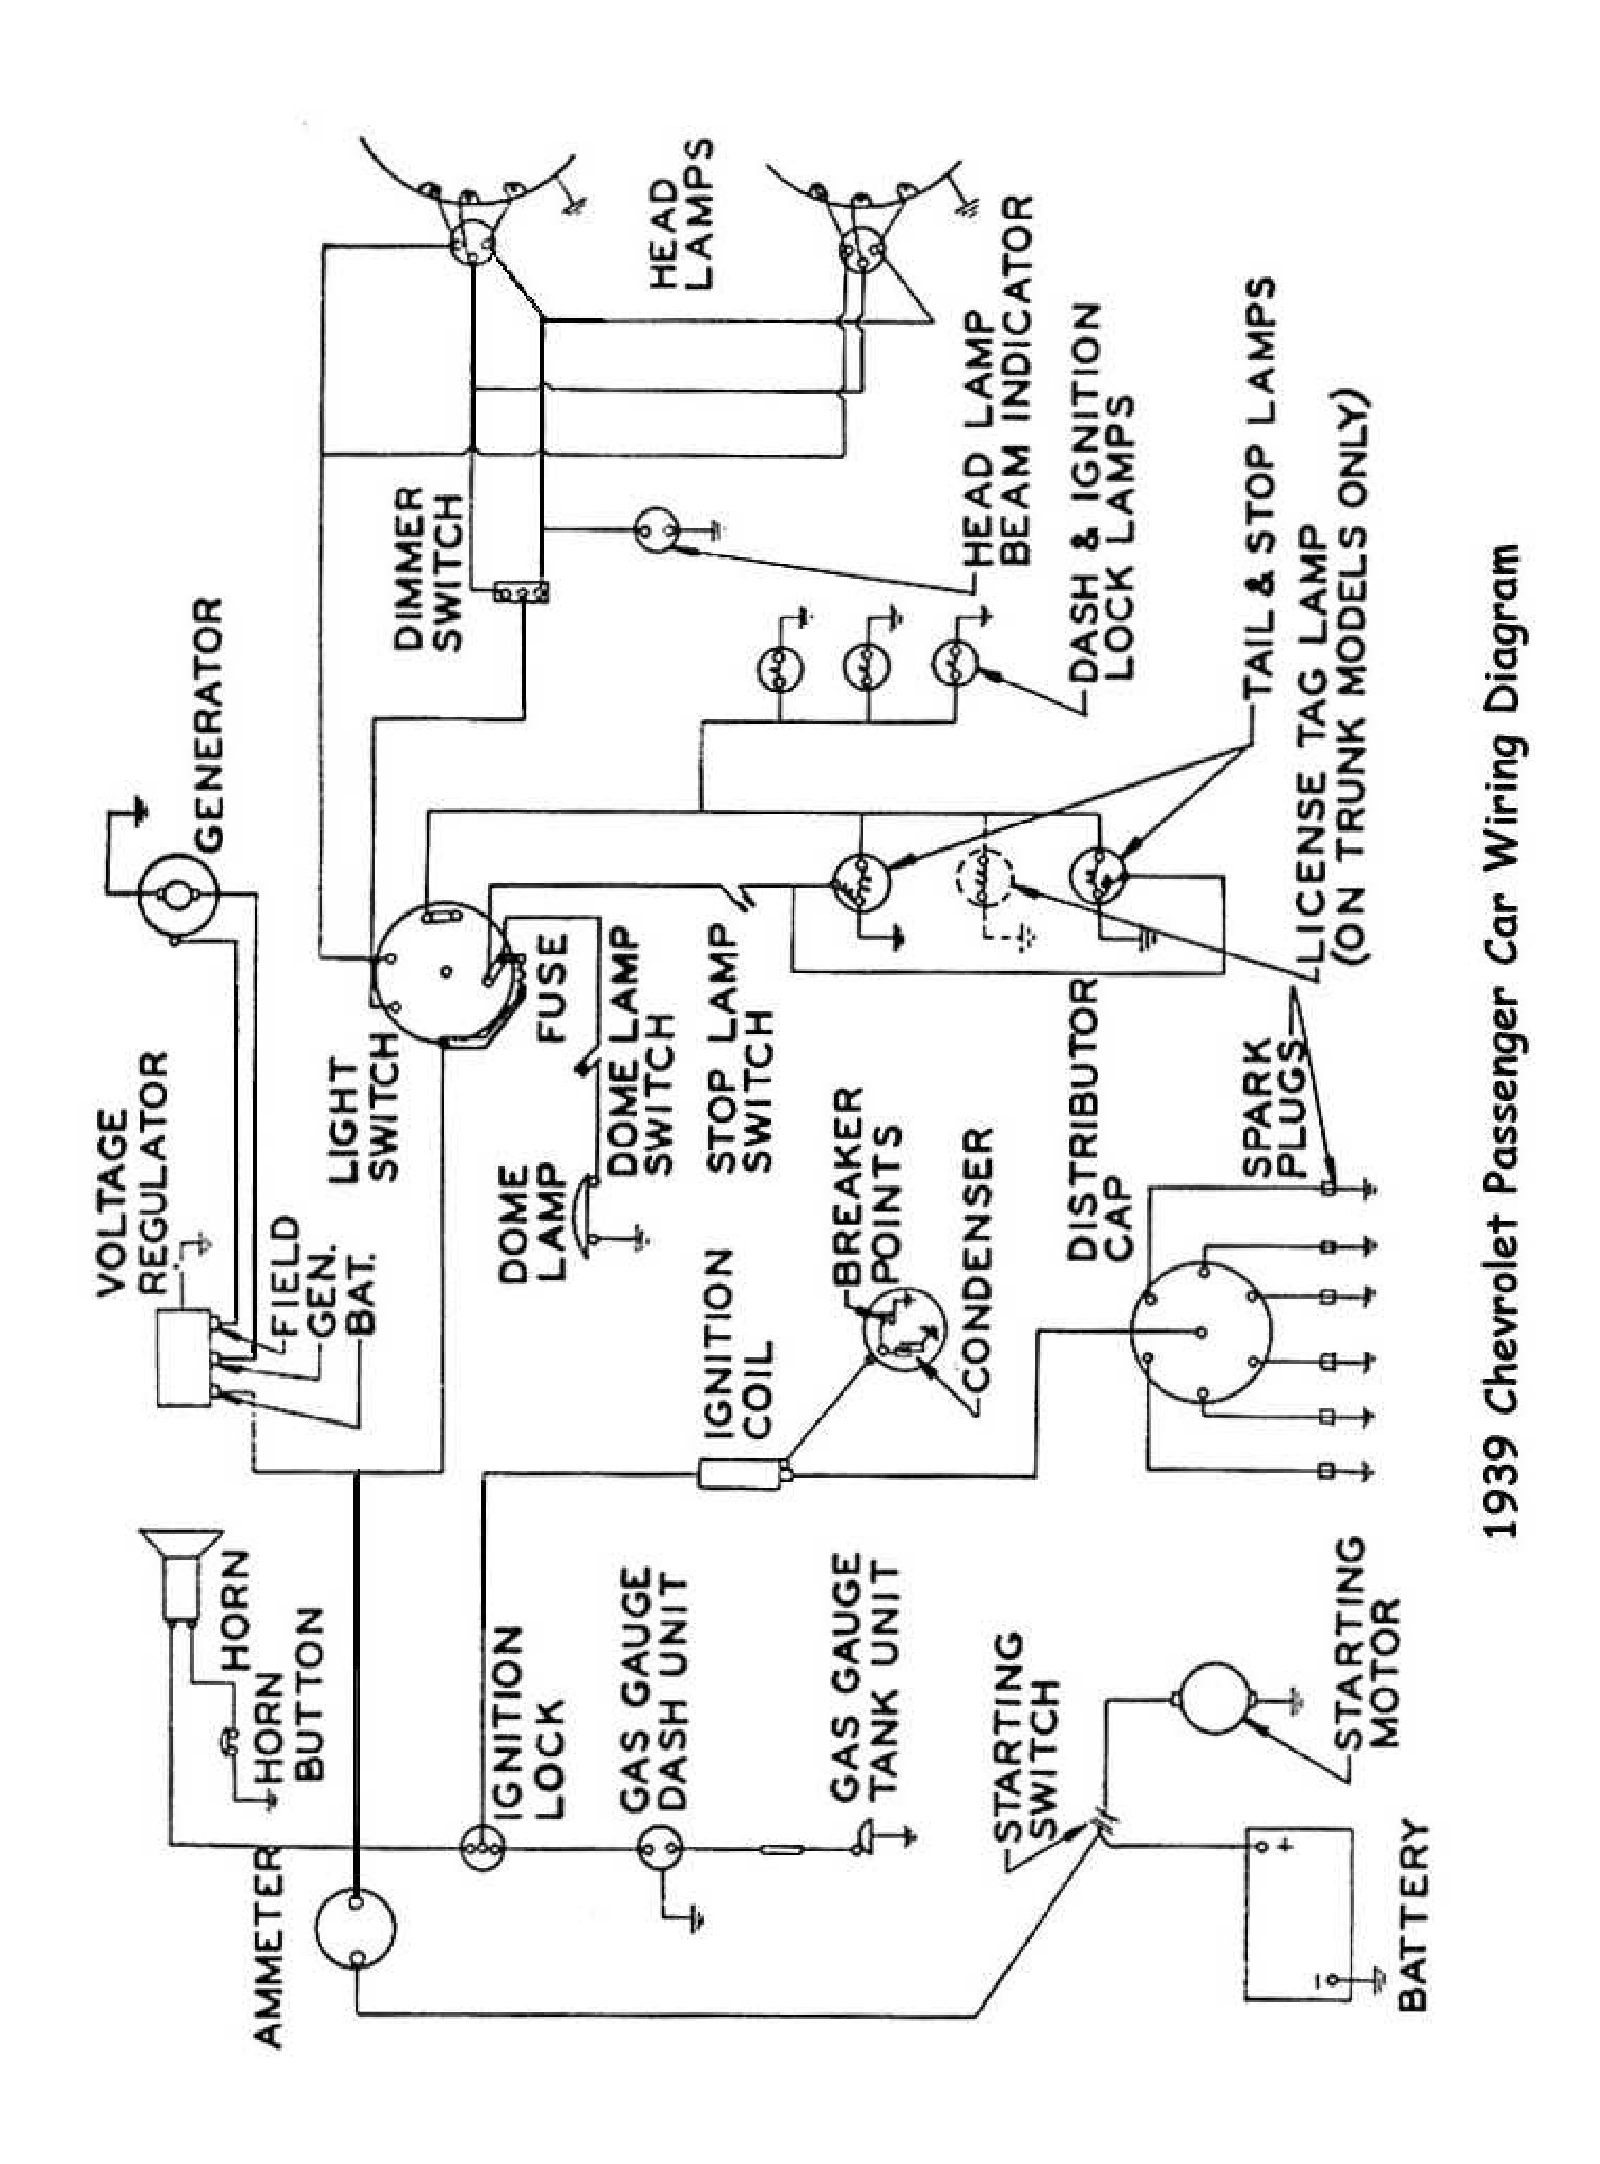 Honeywell Programmable Thermostat Wiring Diagram Thermostat Wiring